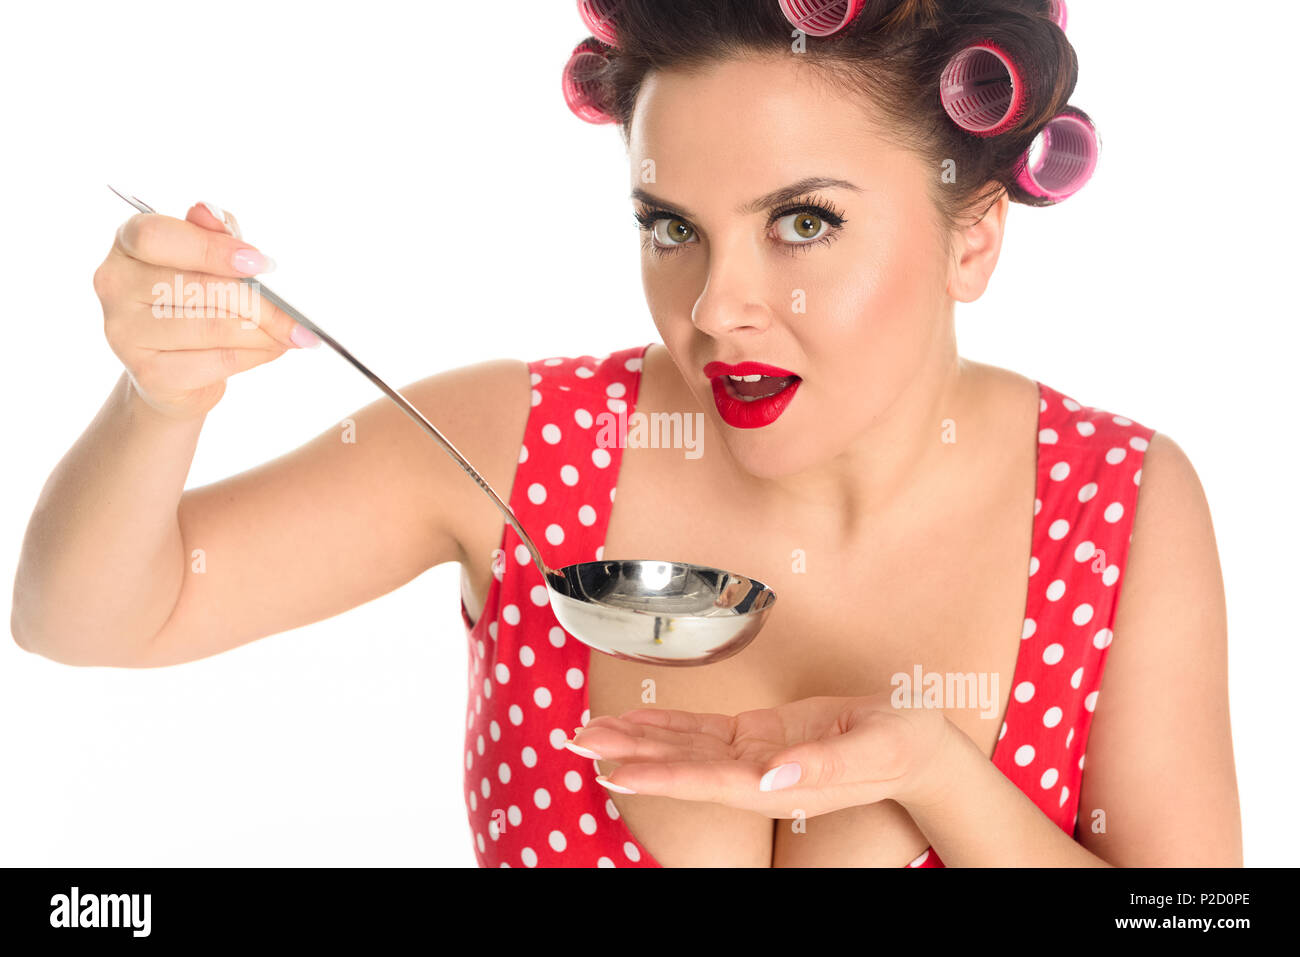 close-up portrait of emotional plus size housewife cooking with ladle isolated on white - Stock Image